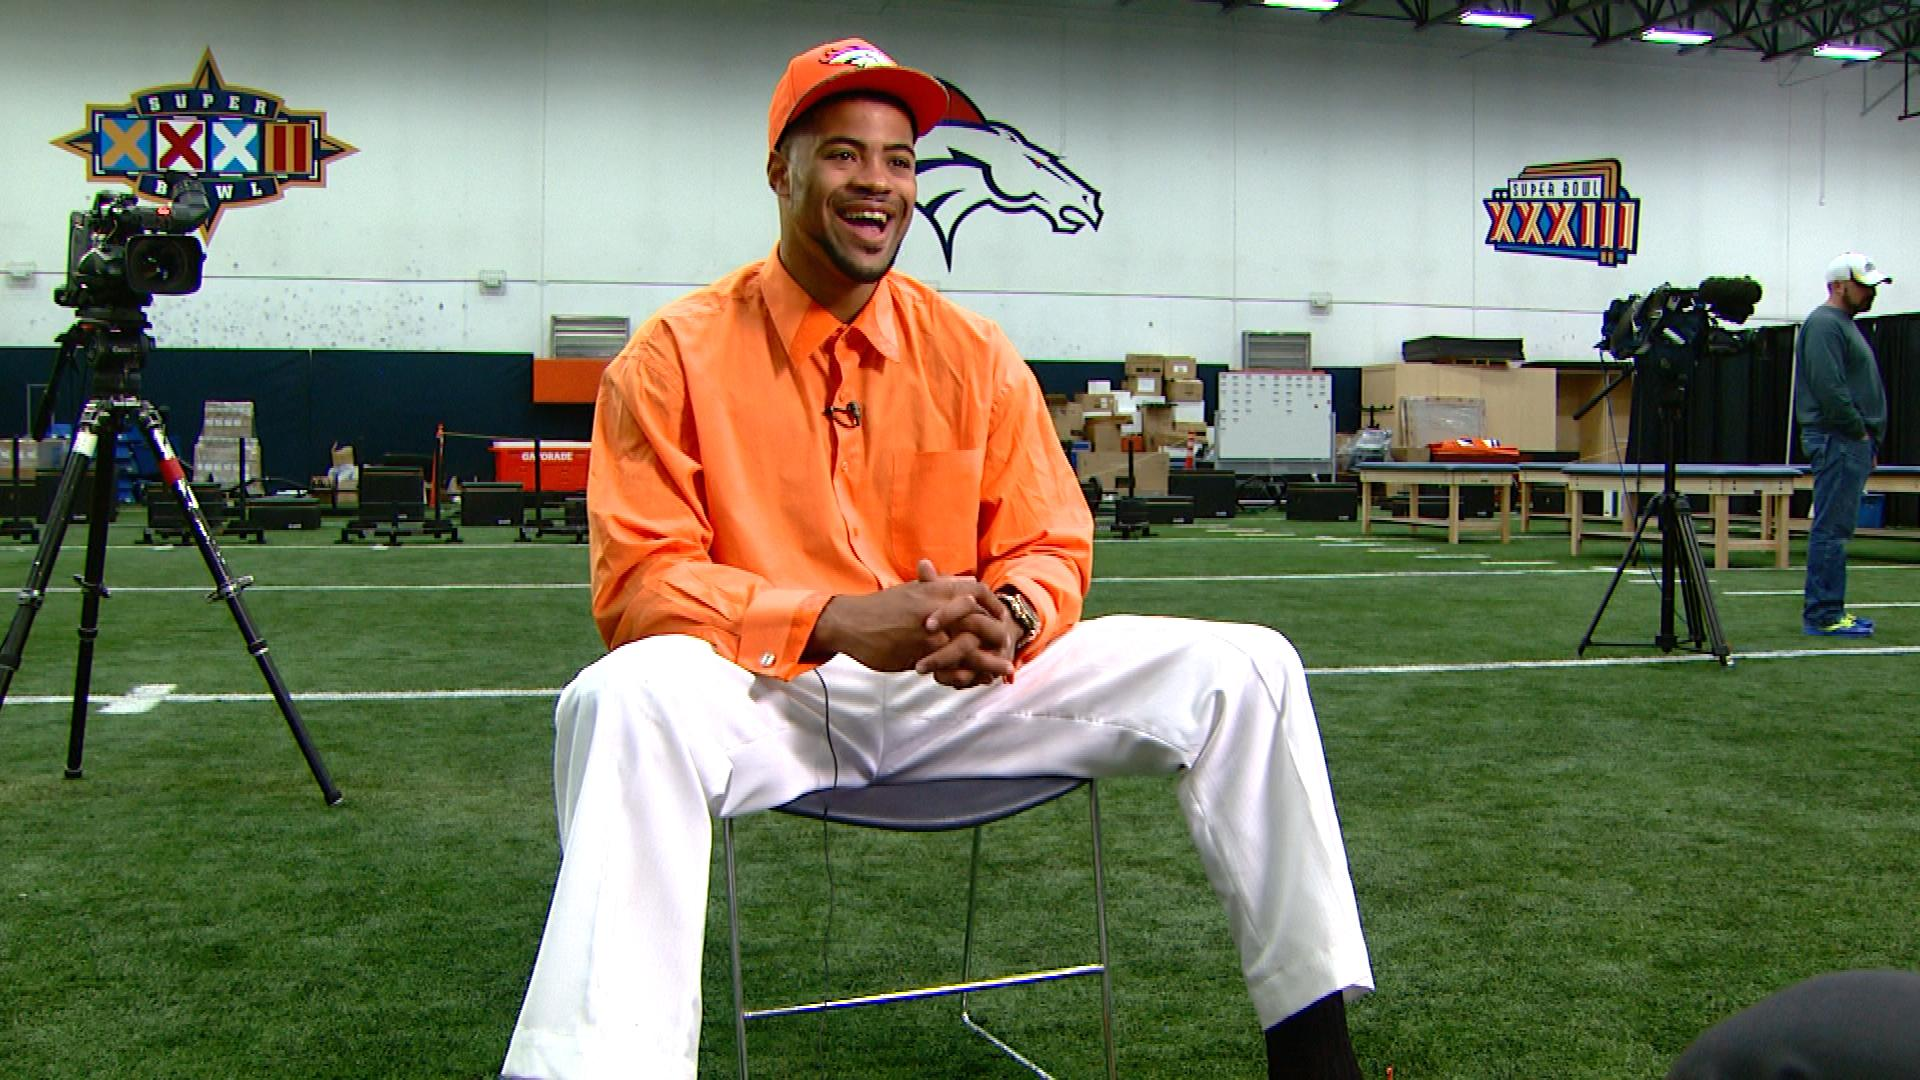 Cody Latimer in his Broncos orange outfit he saved from his high school prom (credit: CBS)